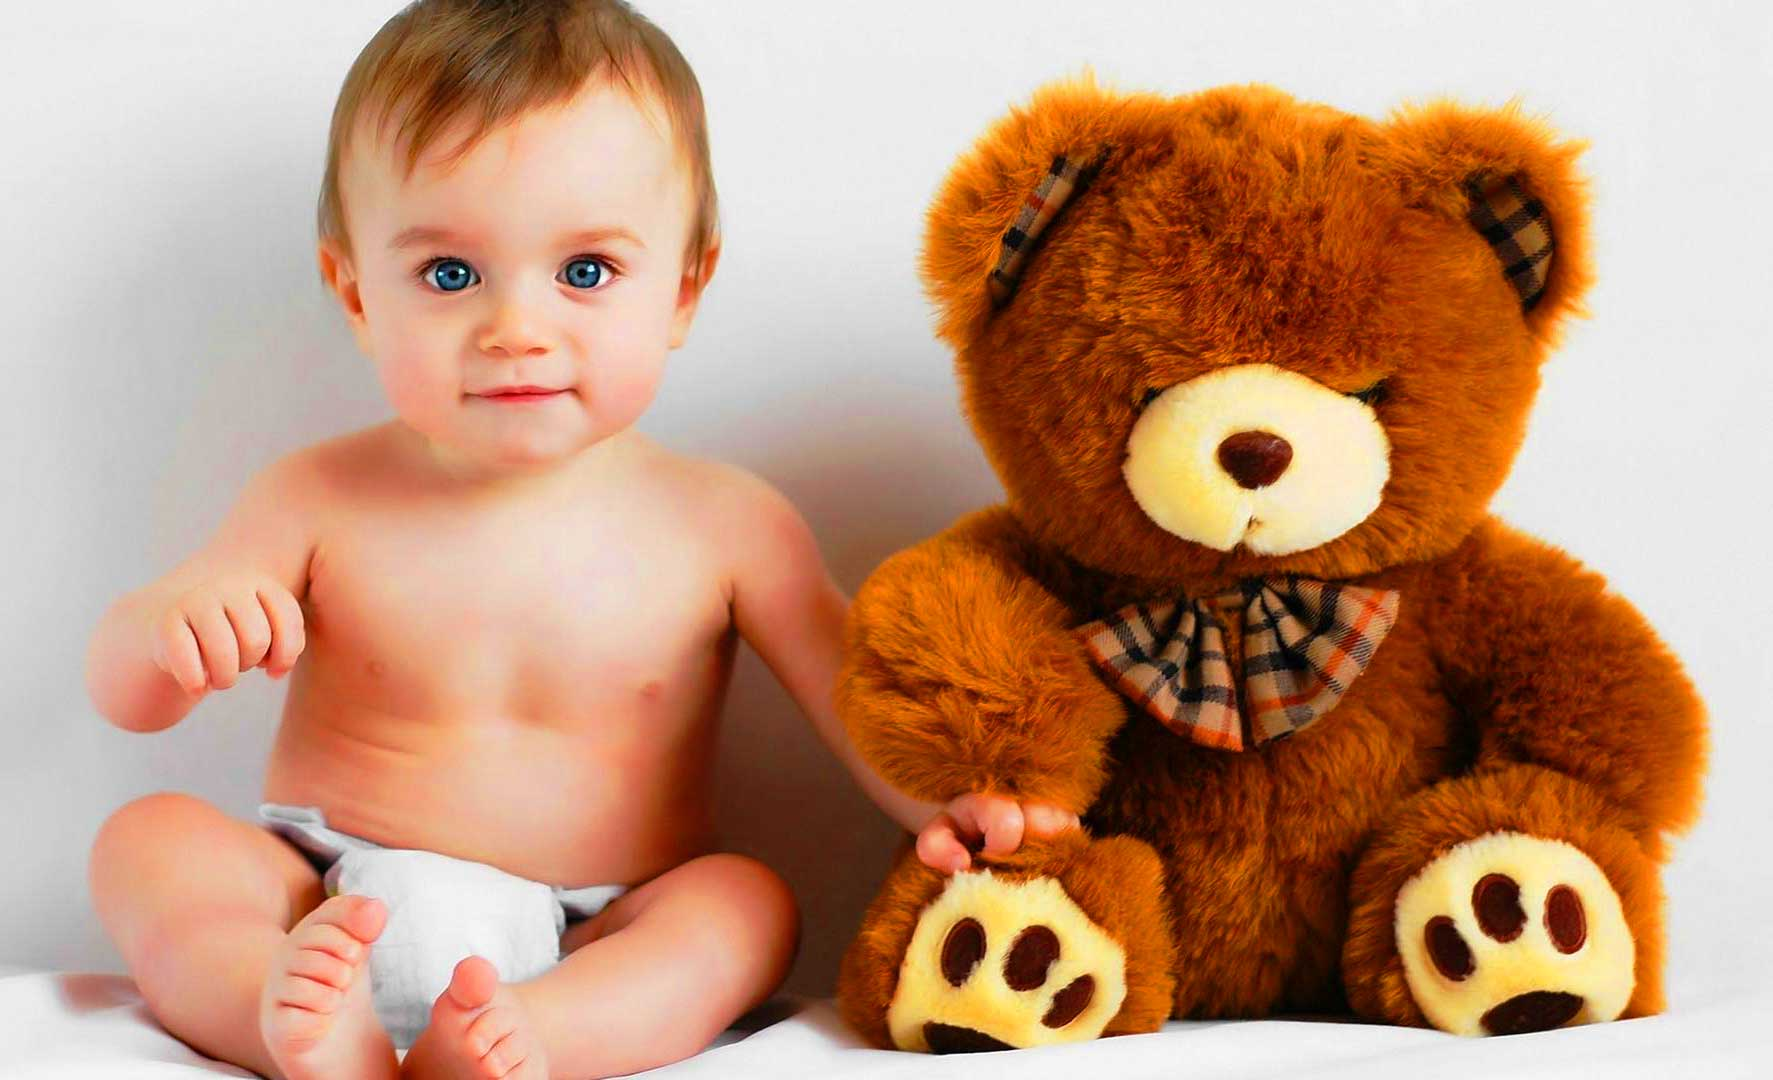 baby-images-hd